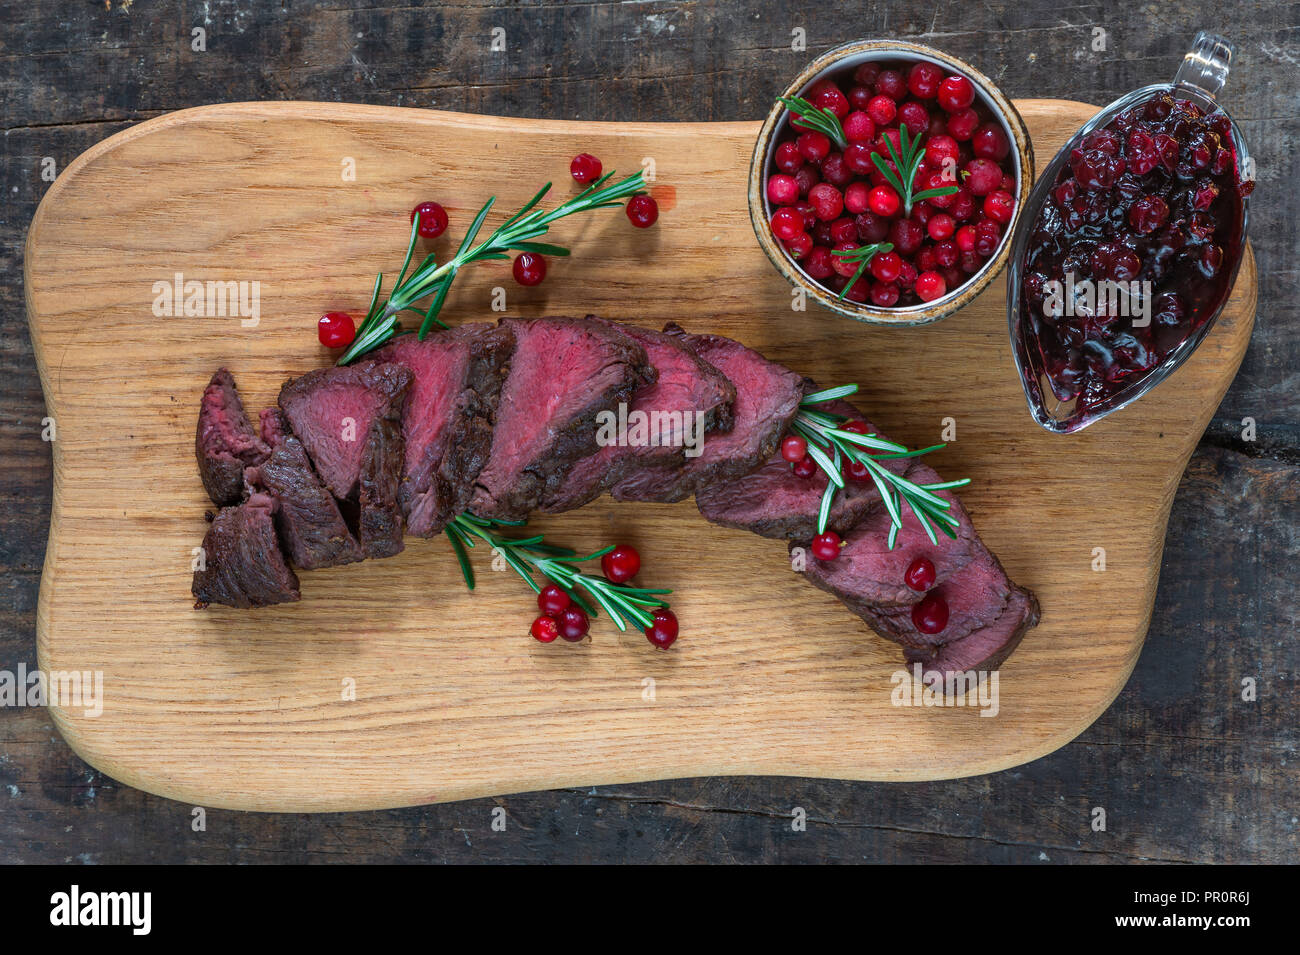 Sliced venison steak on wooden board with lingonberries - top view Stock Photo